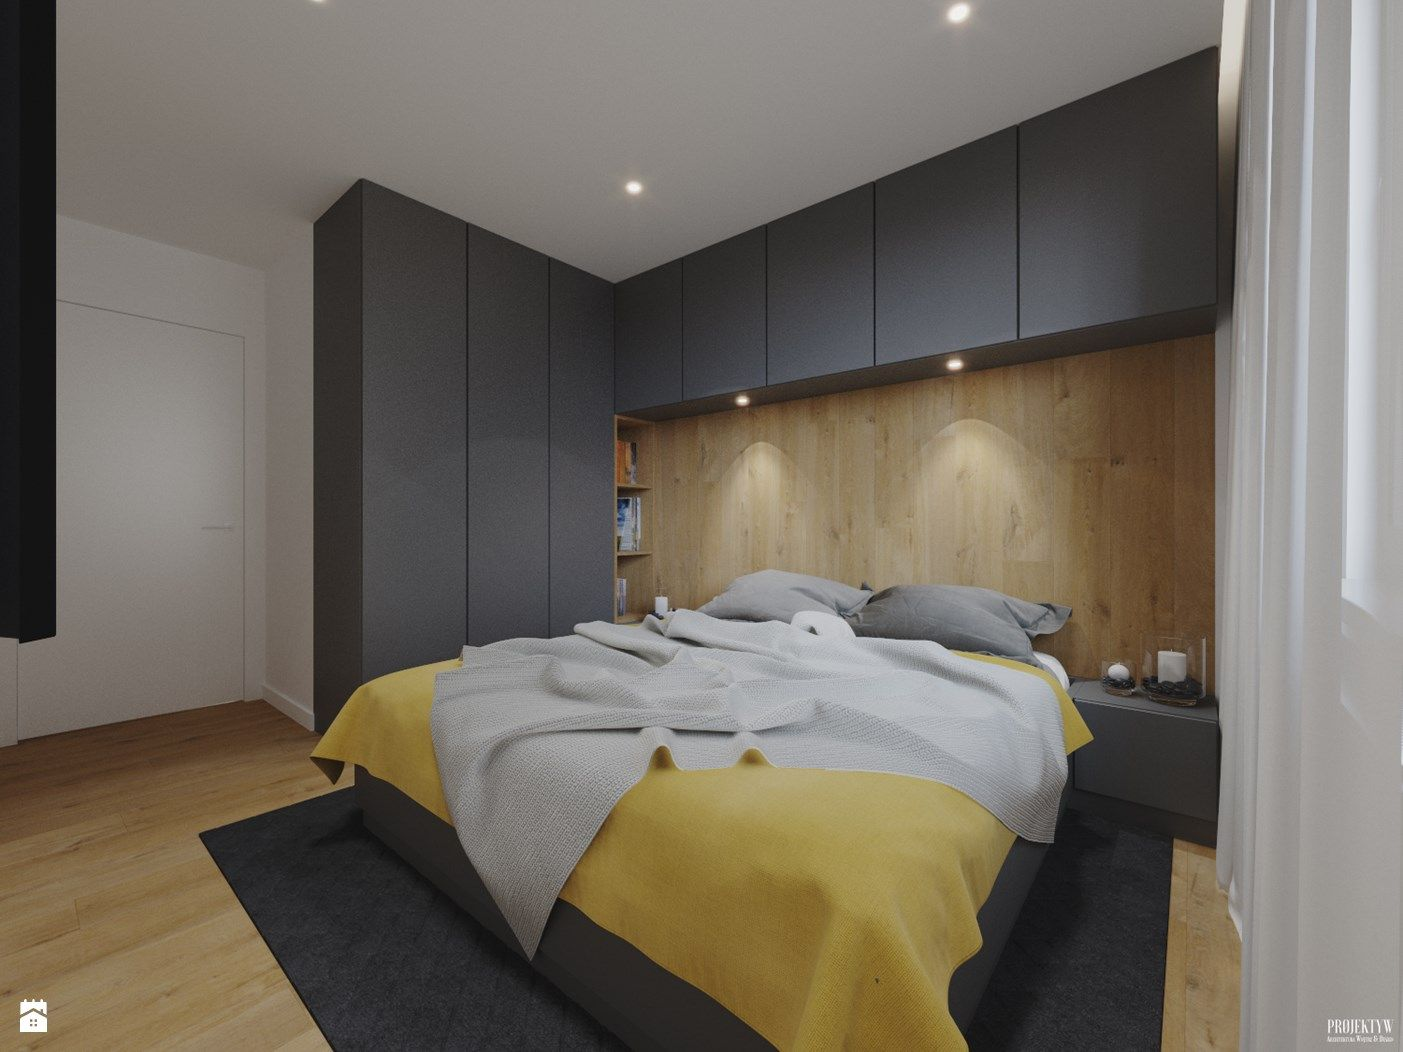 I like the light wood and dark cupboard contrast bedroom designs